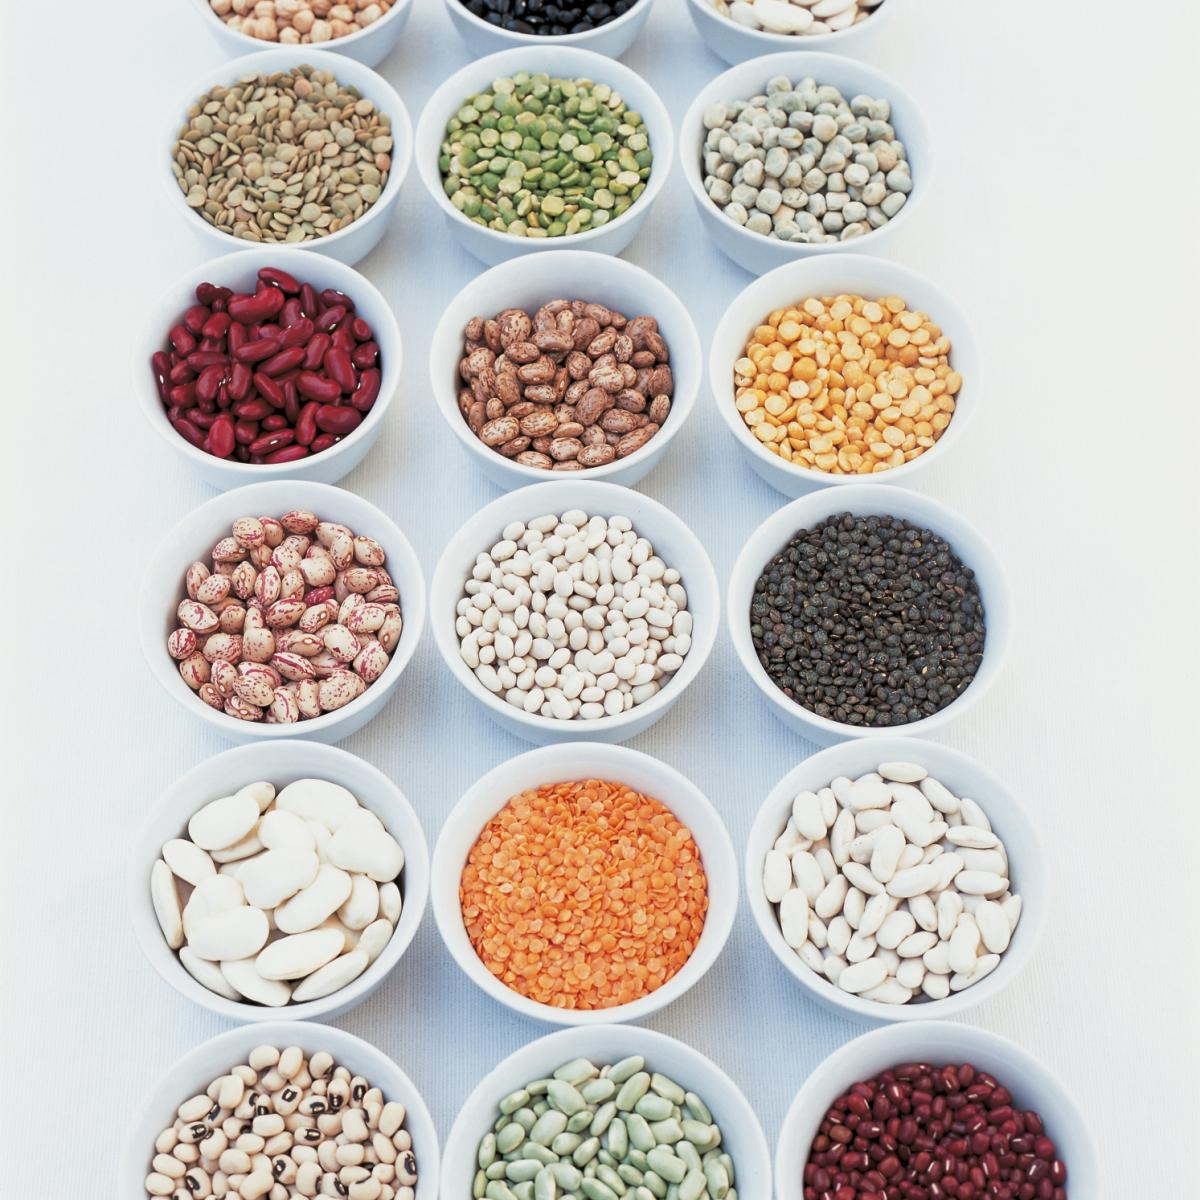 Ingredient htc haricot beans